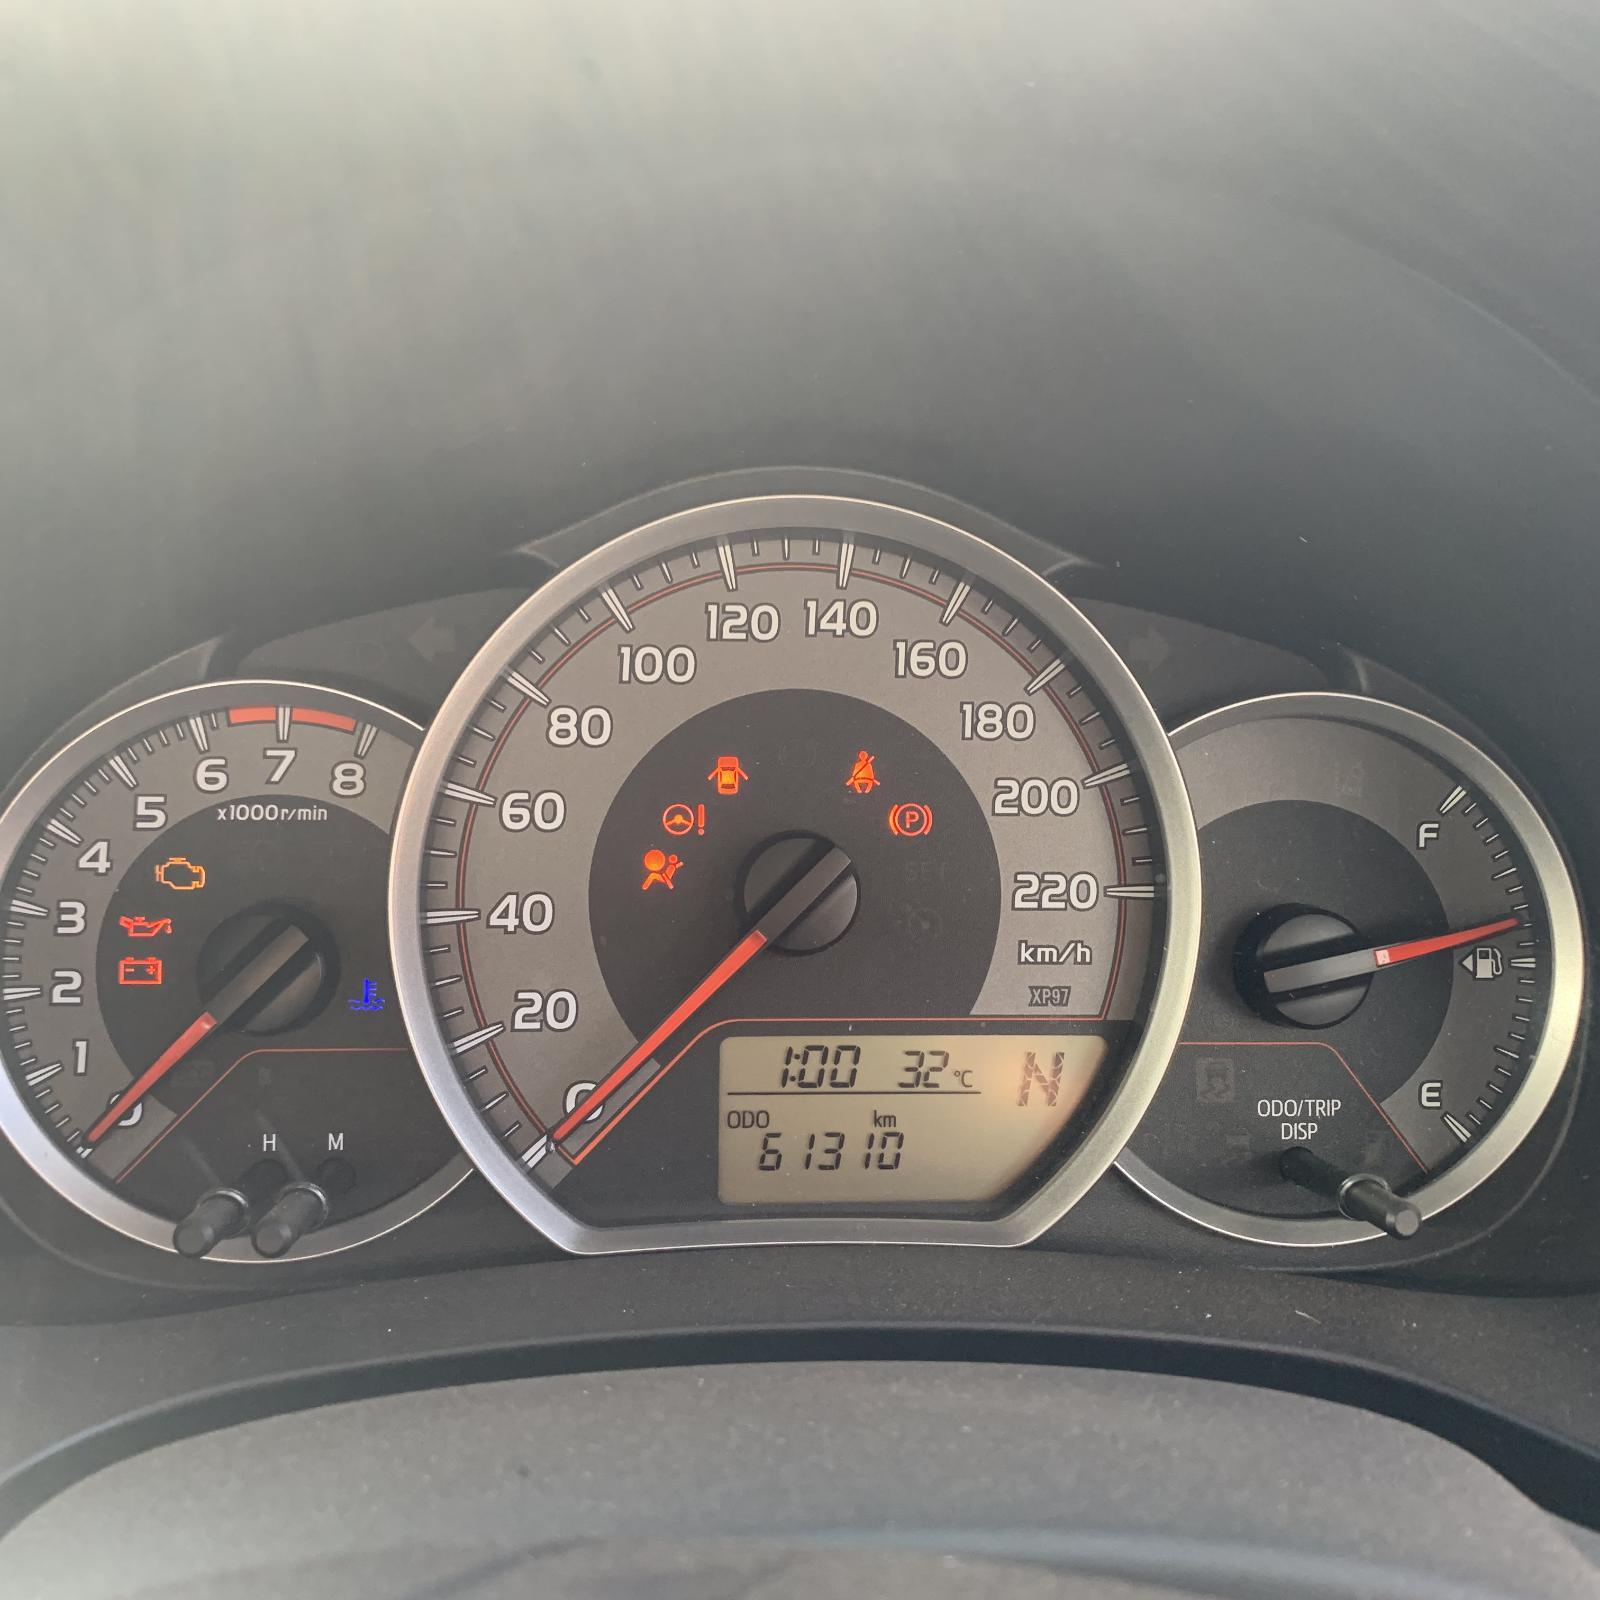 TOYOTA YARIS, Instrument Cluster, AUTO T/M, NCP13#, 07/14-